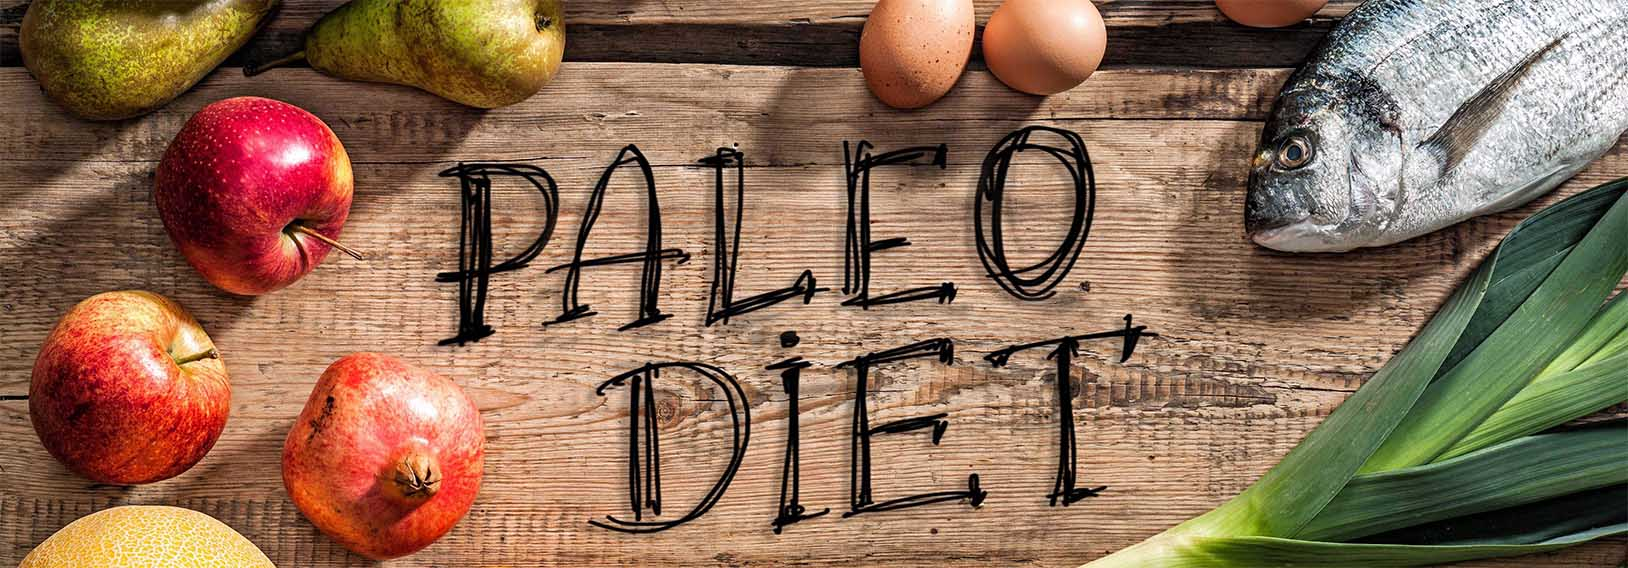 How To Achieve The Paleo Diet